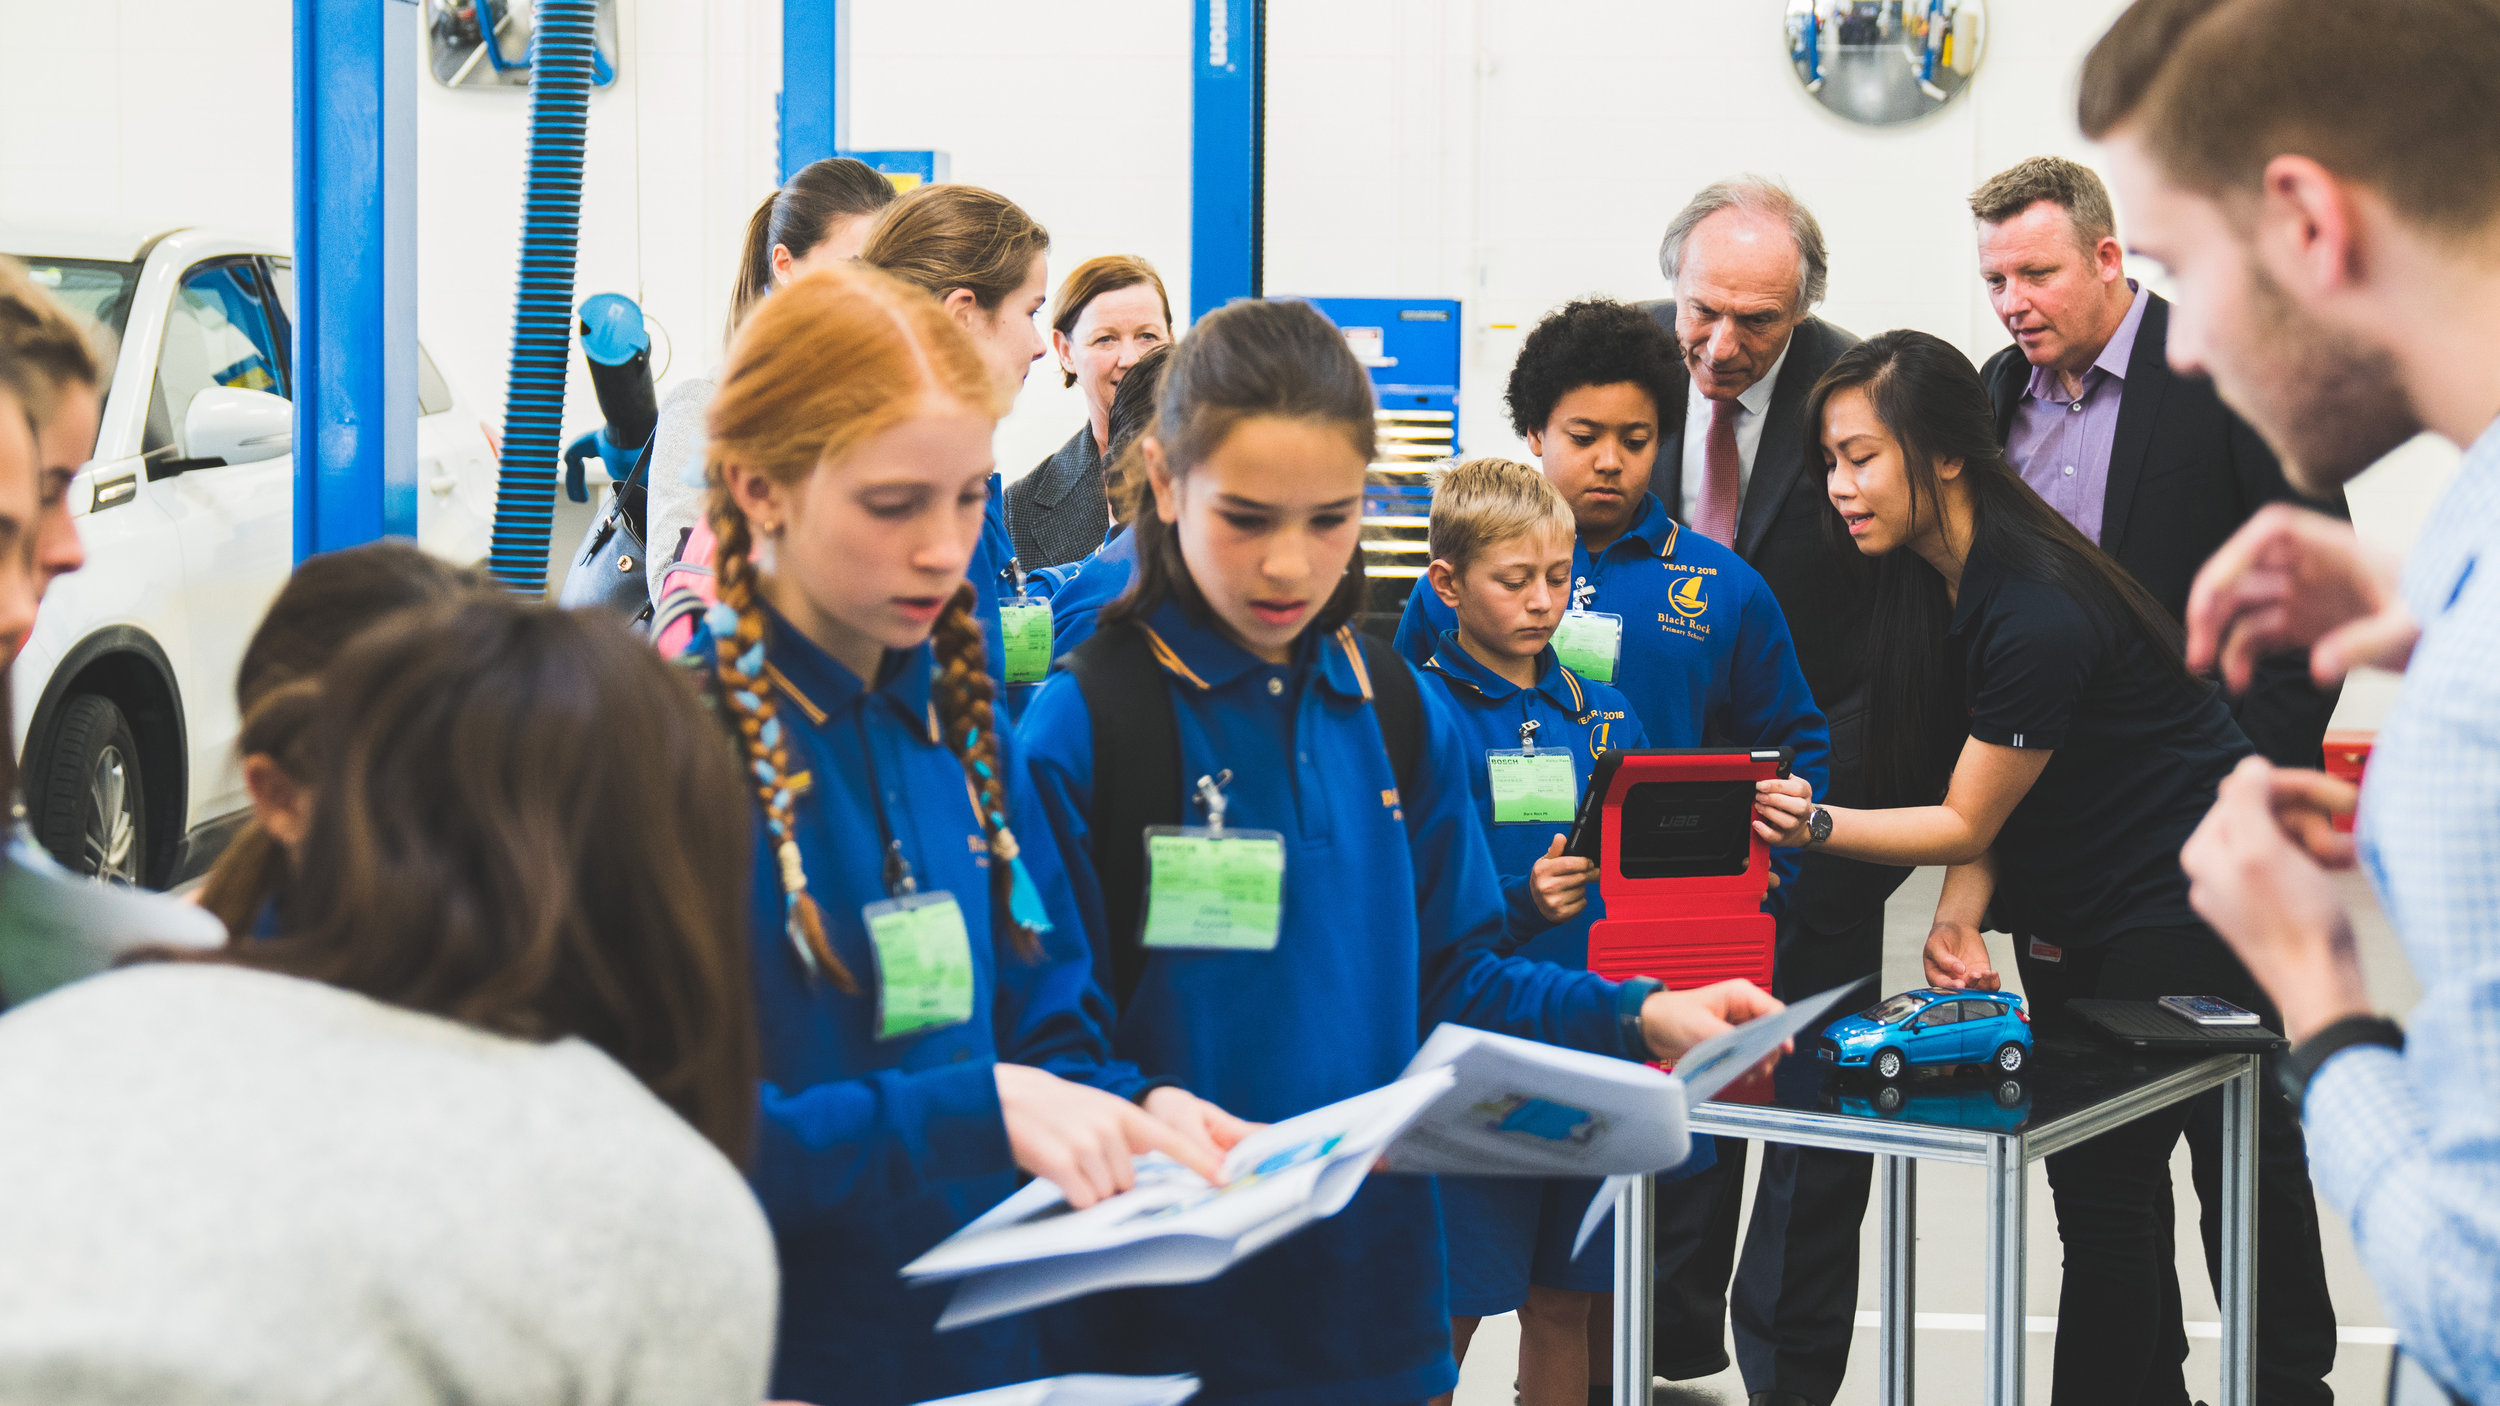 The Learn at Bosch program aims to spark enthusiasm for STEM amongs young students.jpg